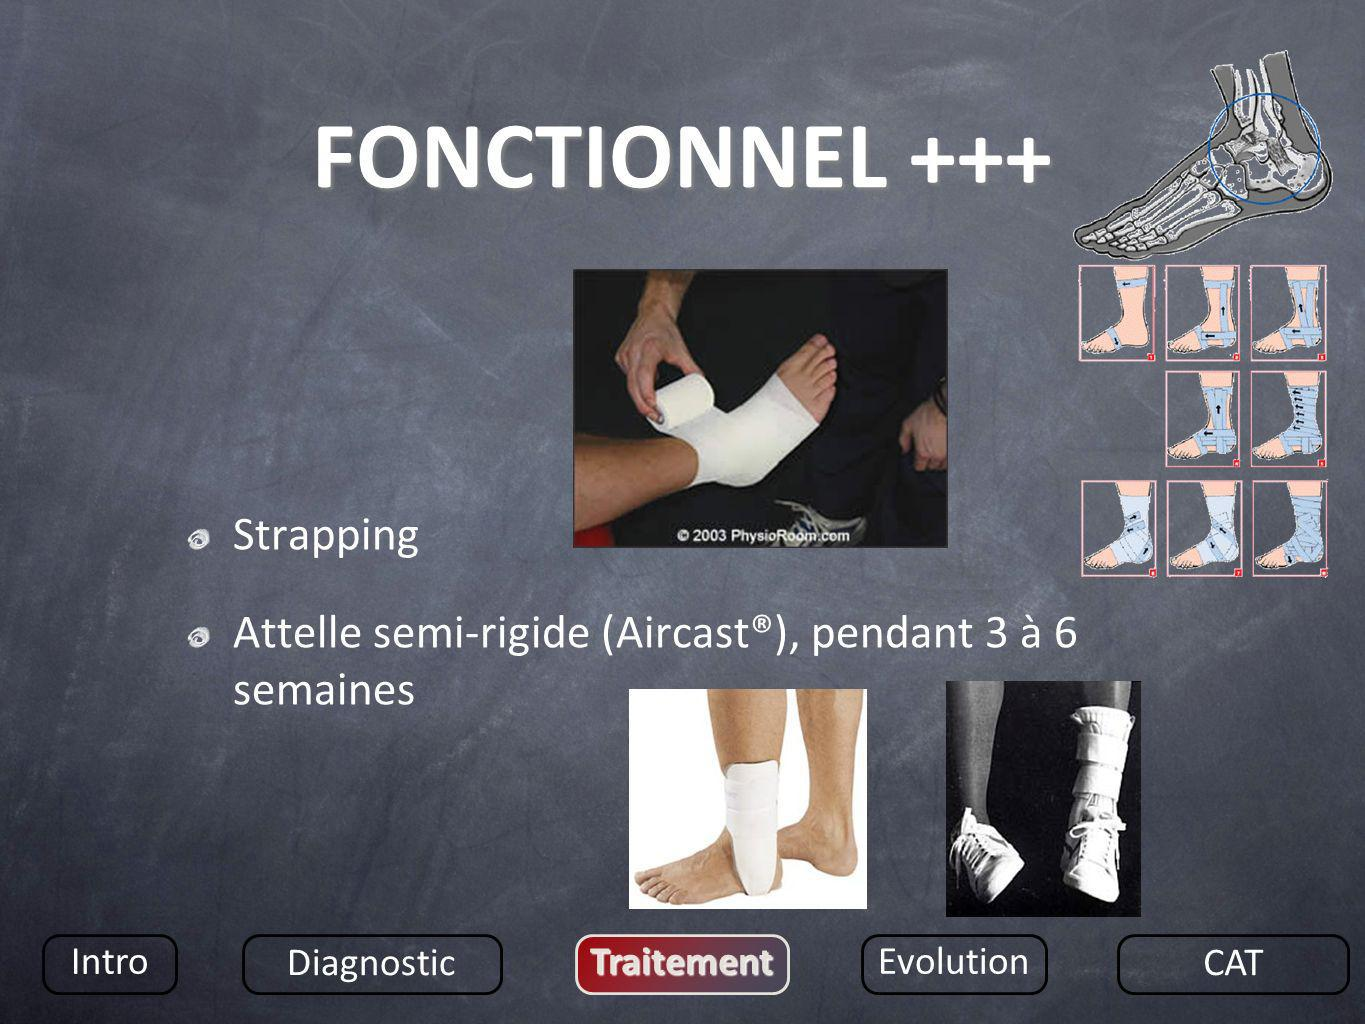 FONCTIONNEL +++ Strapping